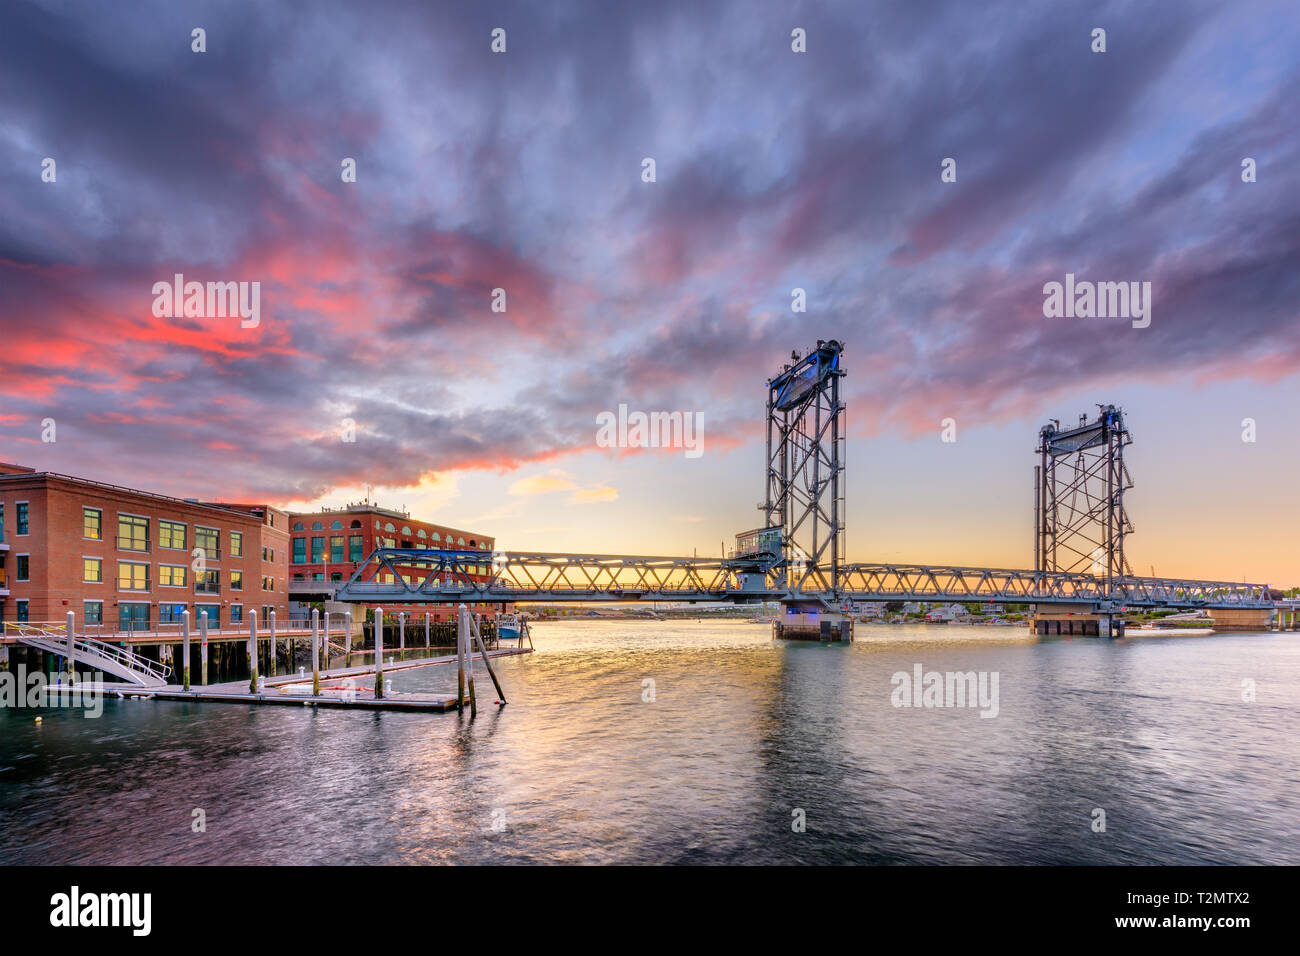 Portsmouth, New Hampshire, USA at Memorial Bridge on the Piscataqua River at dusk. Stock Photo